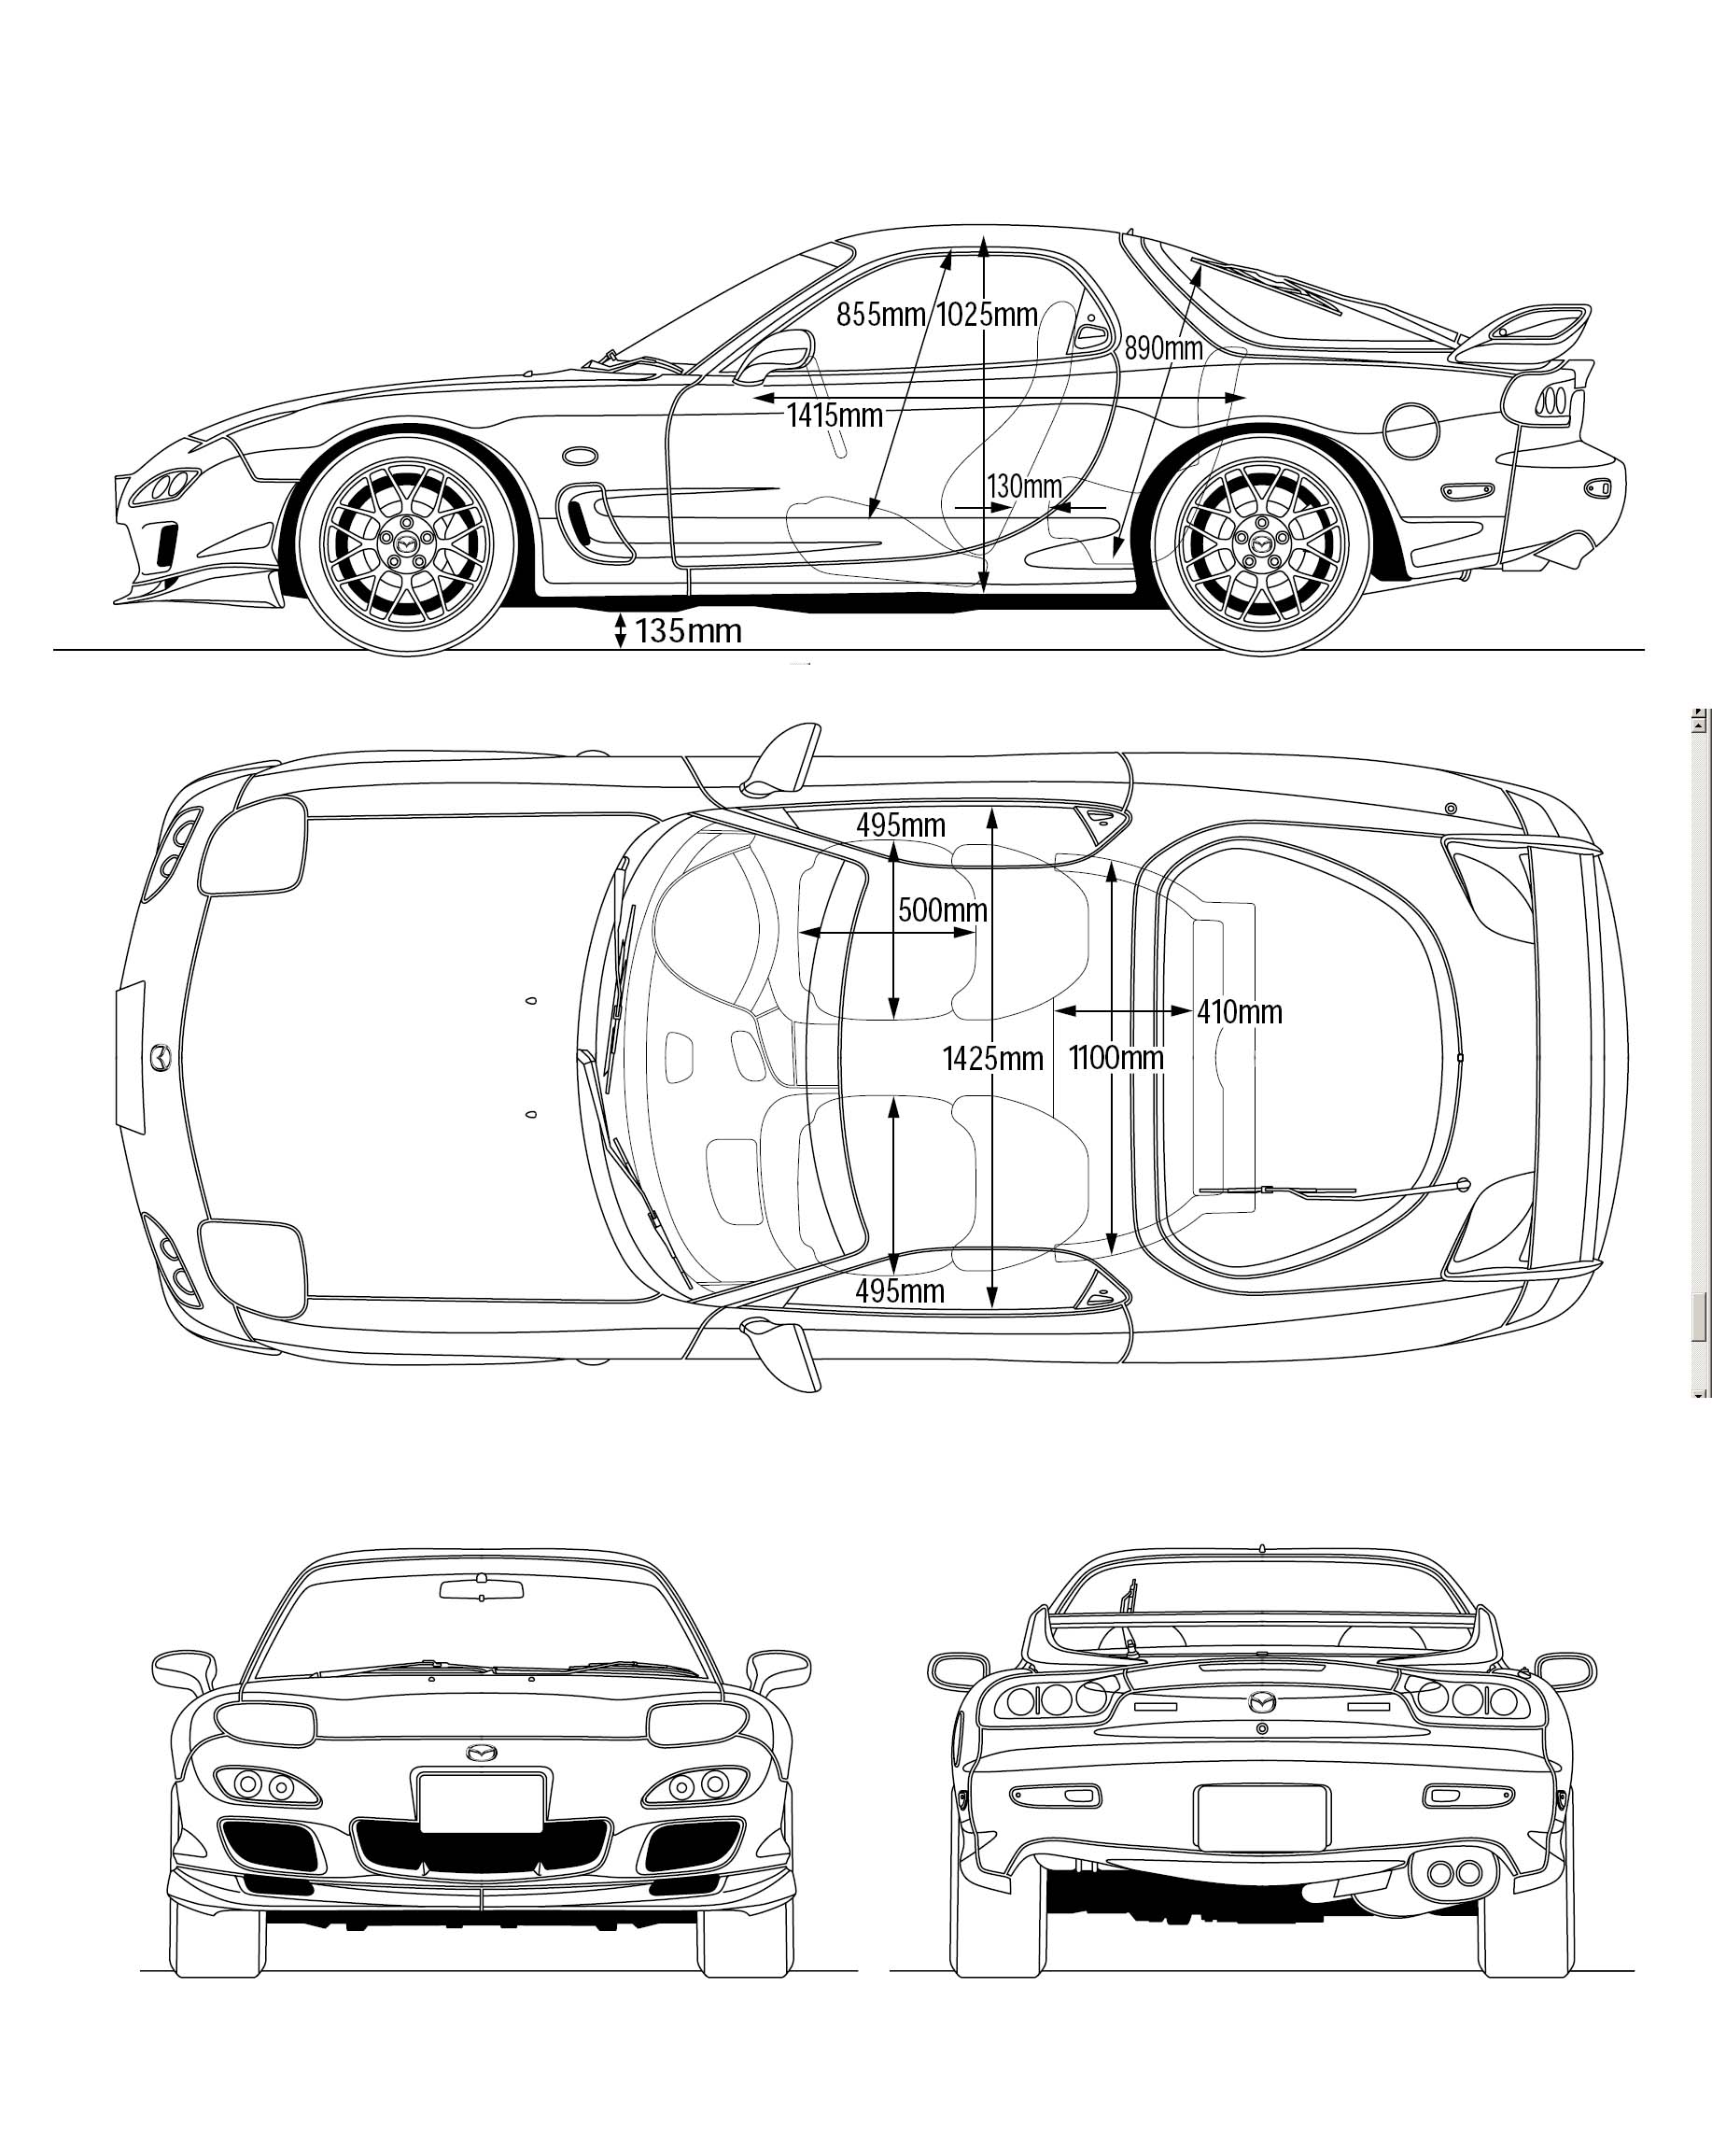 Mazda Rx 7 Rotary Engine Diagram on patent diagrams mazda direct injection rotary engine